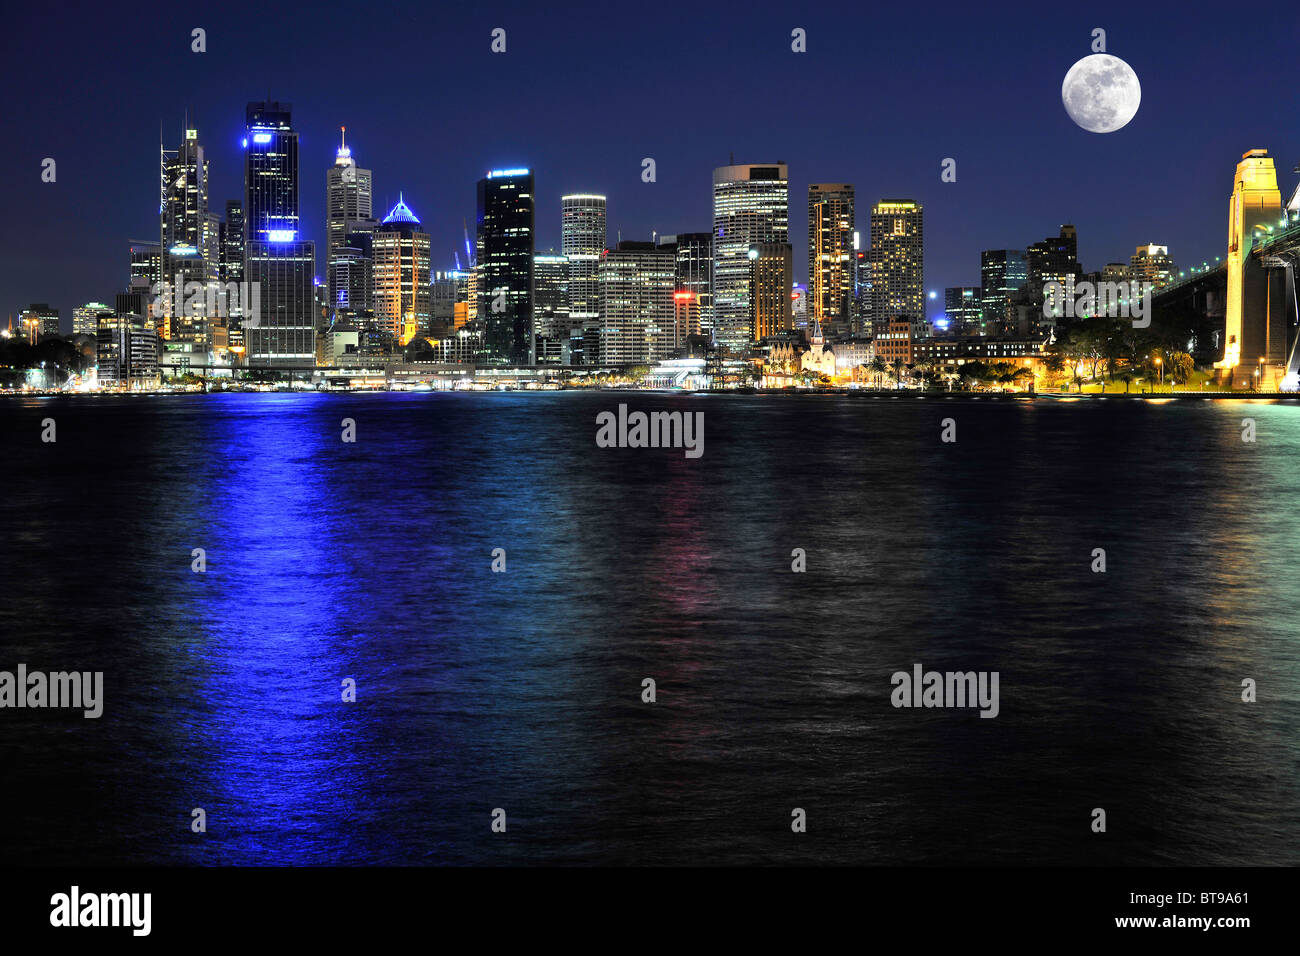 View of Sydney Cove with a full moon, Circular Quay, harbour, Sydney skyline, Central Business District, night, - Stock Image